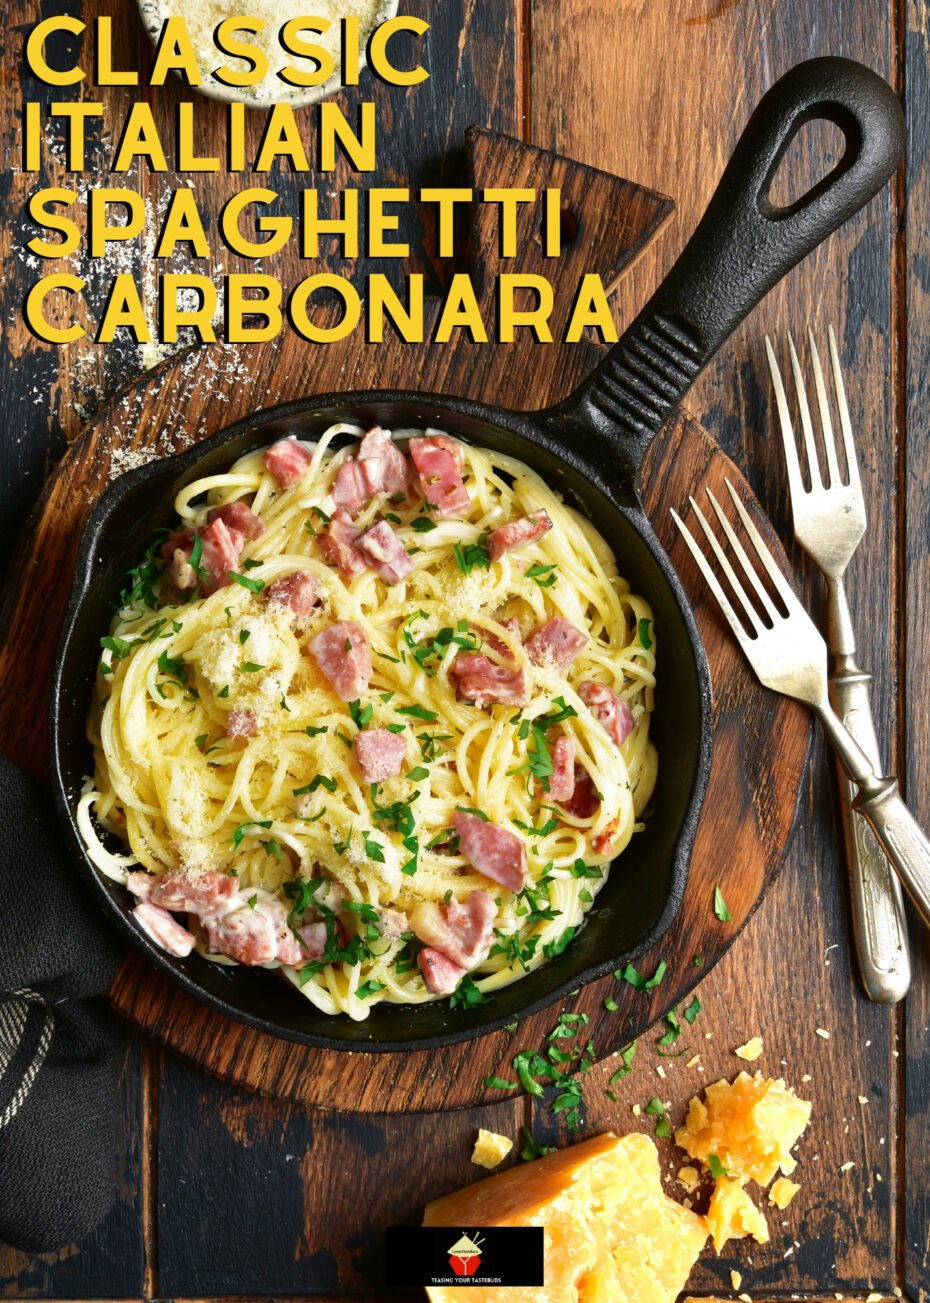 Classic Italian Spaghetti Carbonara. Our best ever traditional carbonara with cheese and bacon. A cheesy pasta dish, easy to make & a family favorite.